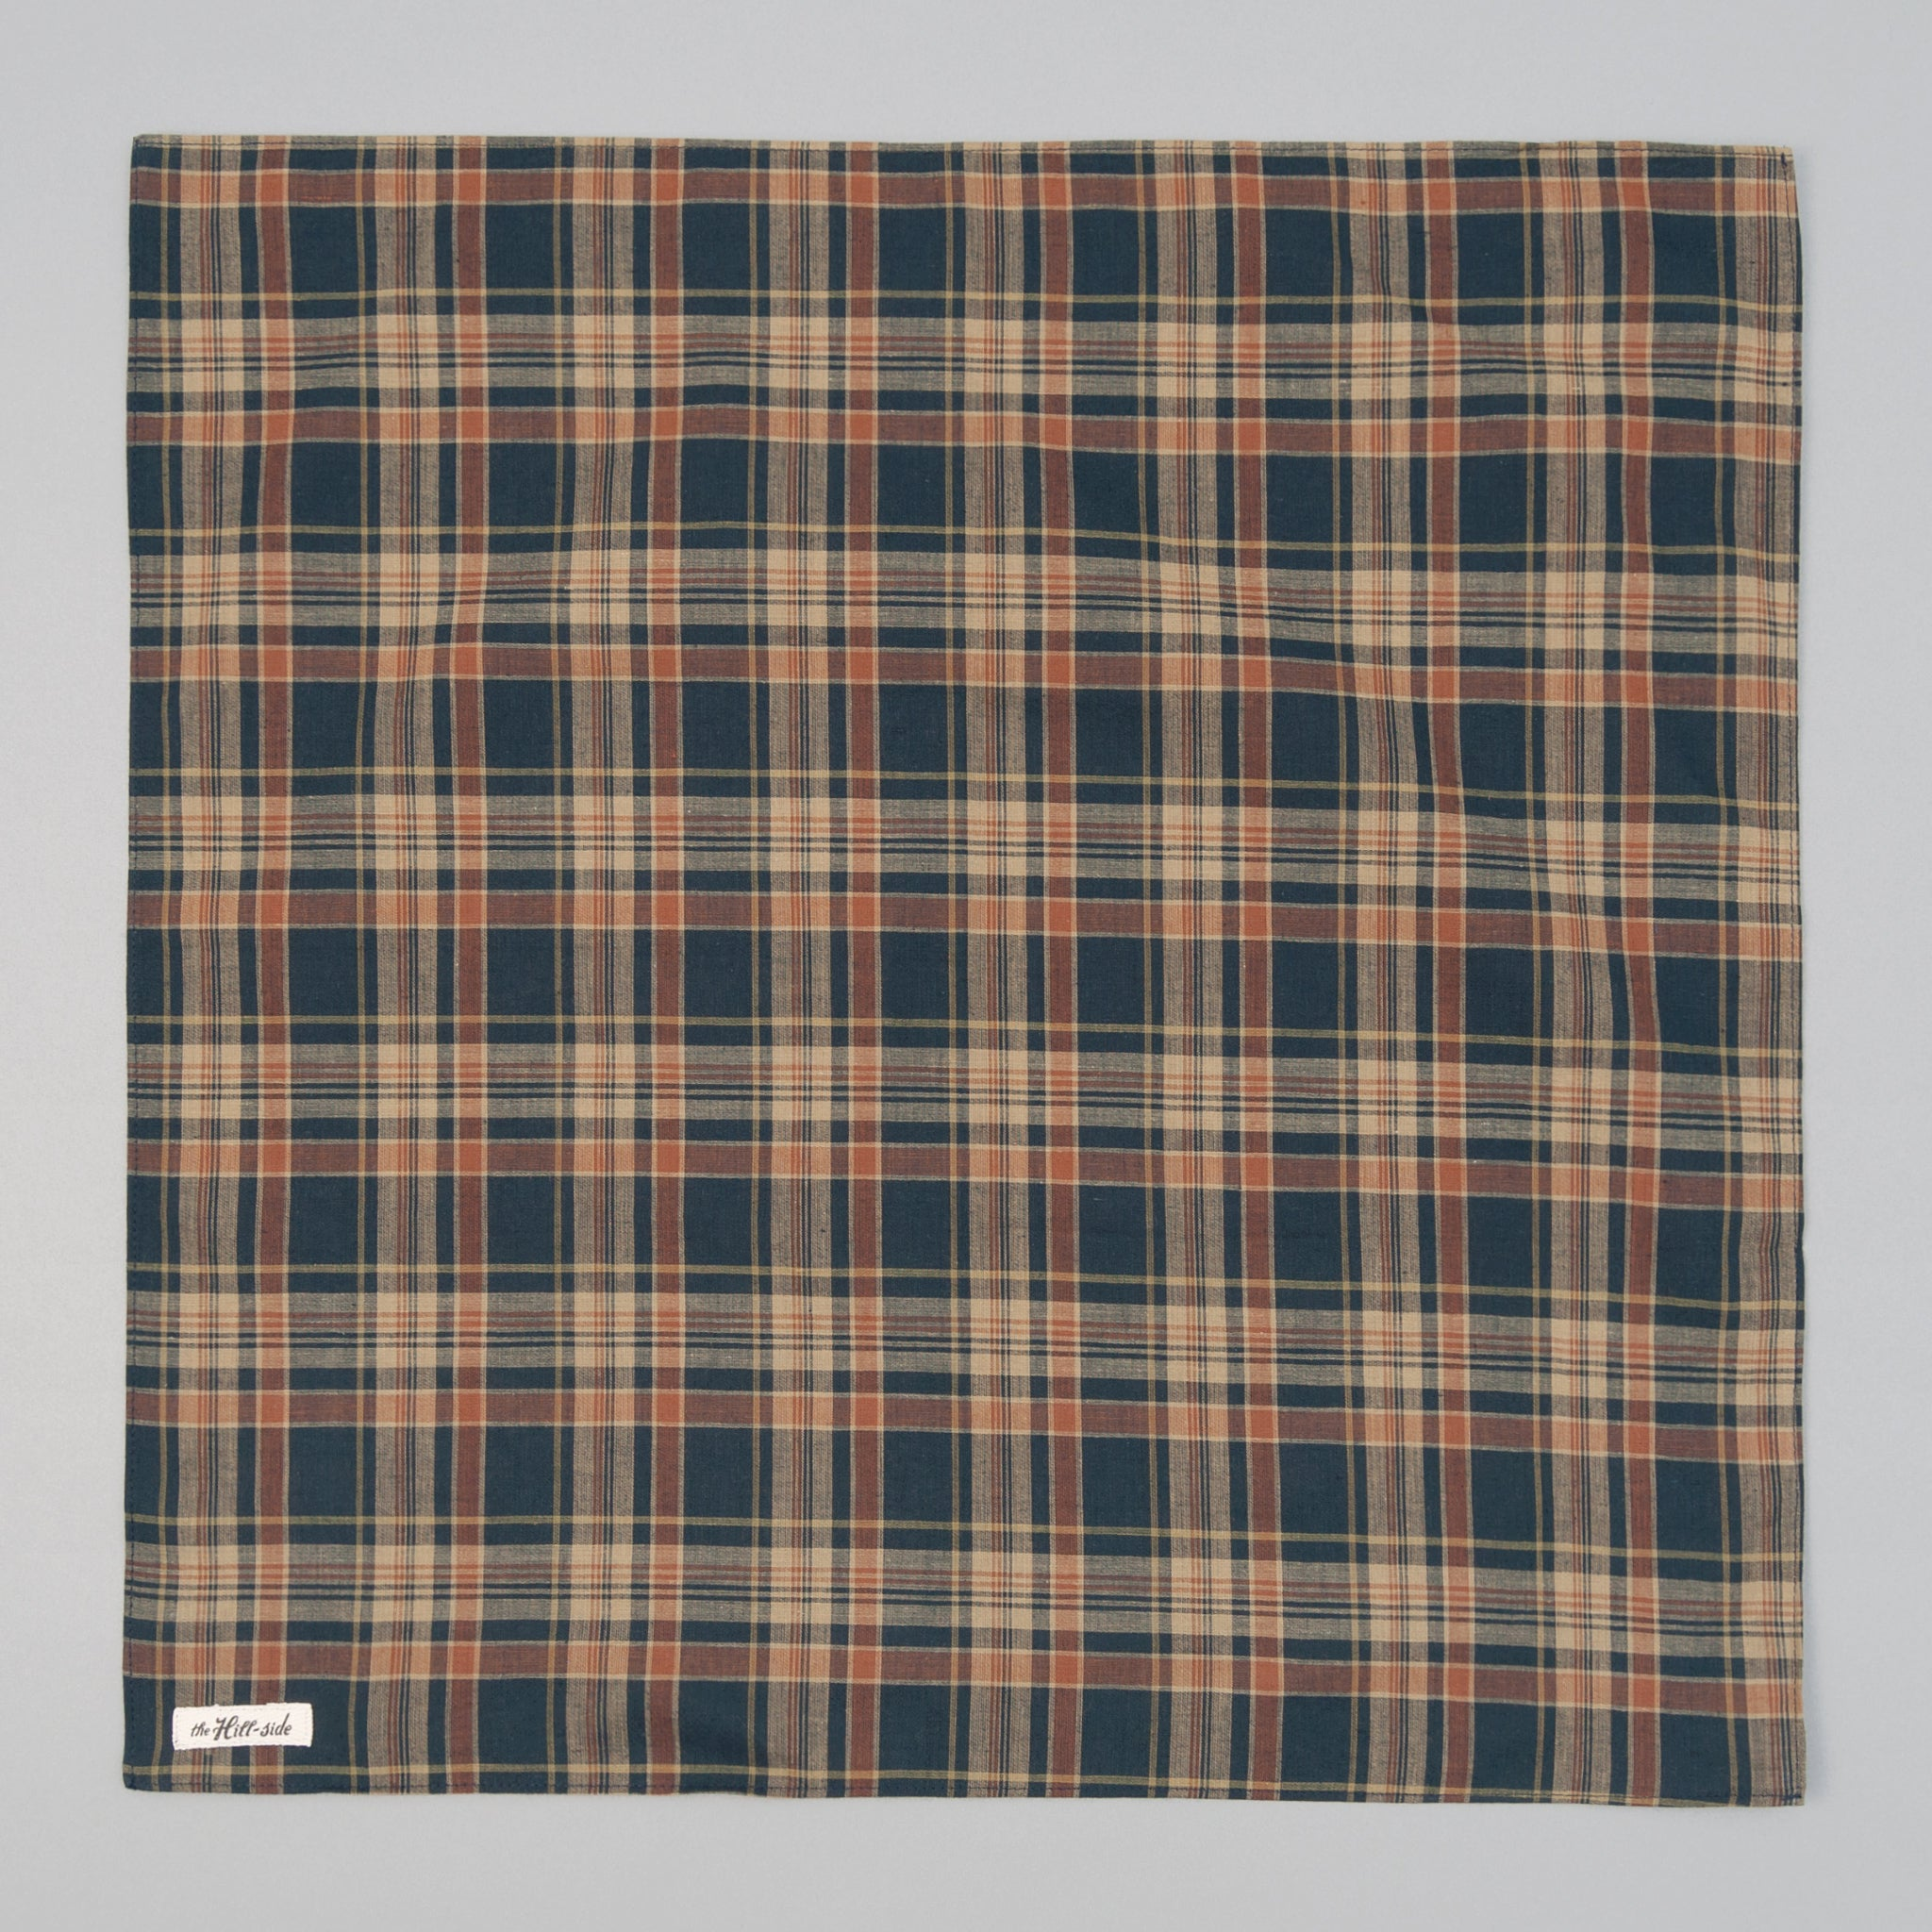 The Hill-Side - OD Indian Madras Bandana, Navy / Orange Check - BA1-424 - image 1